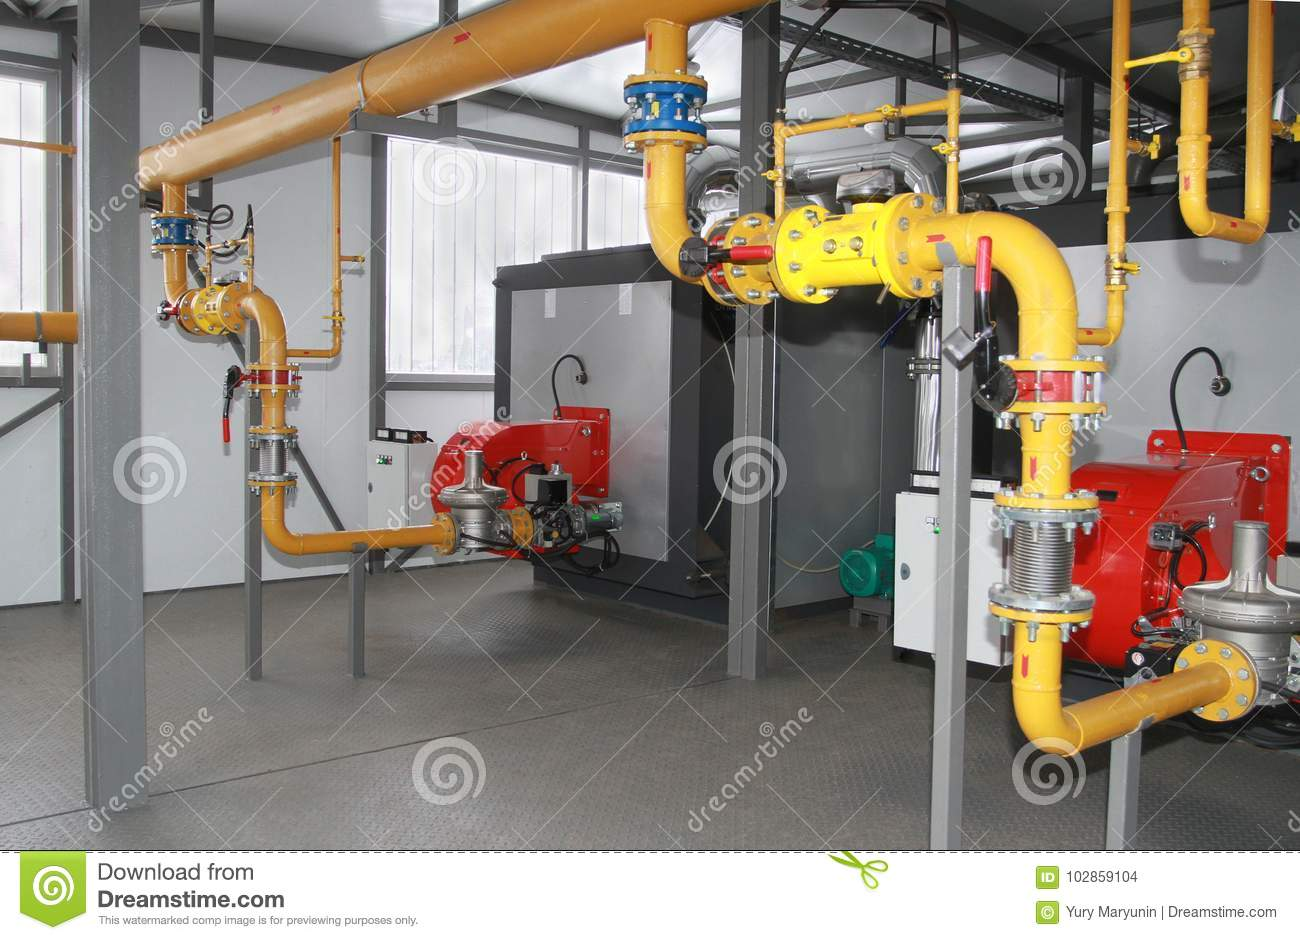 Two industrial gas boilers stock photo. Image of torches - 102859104